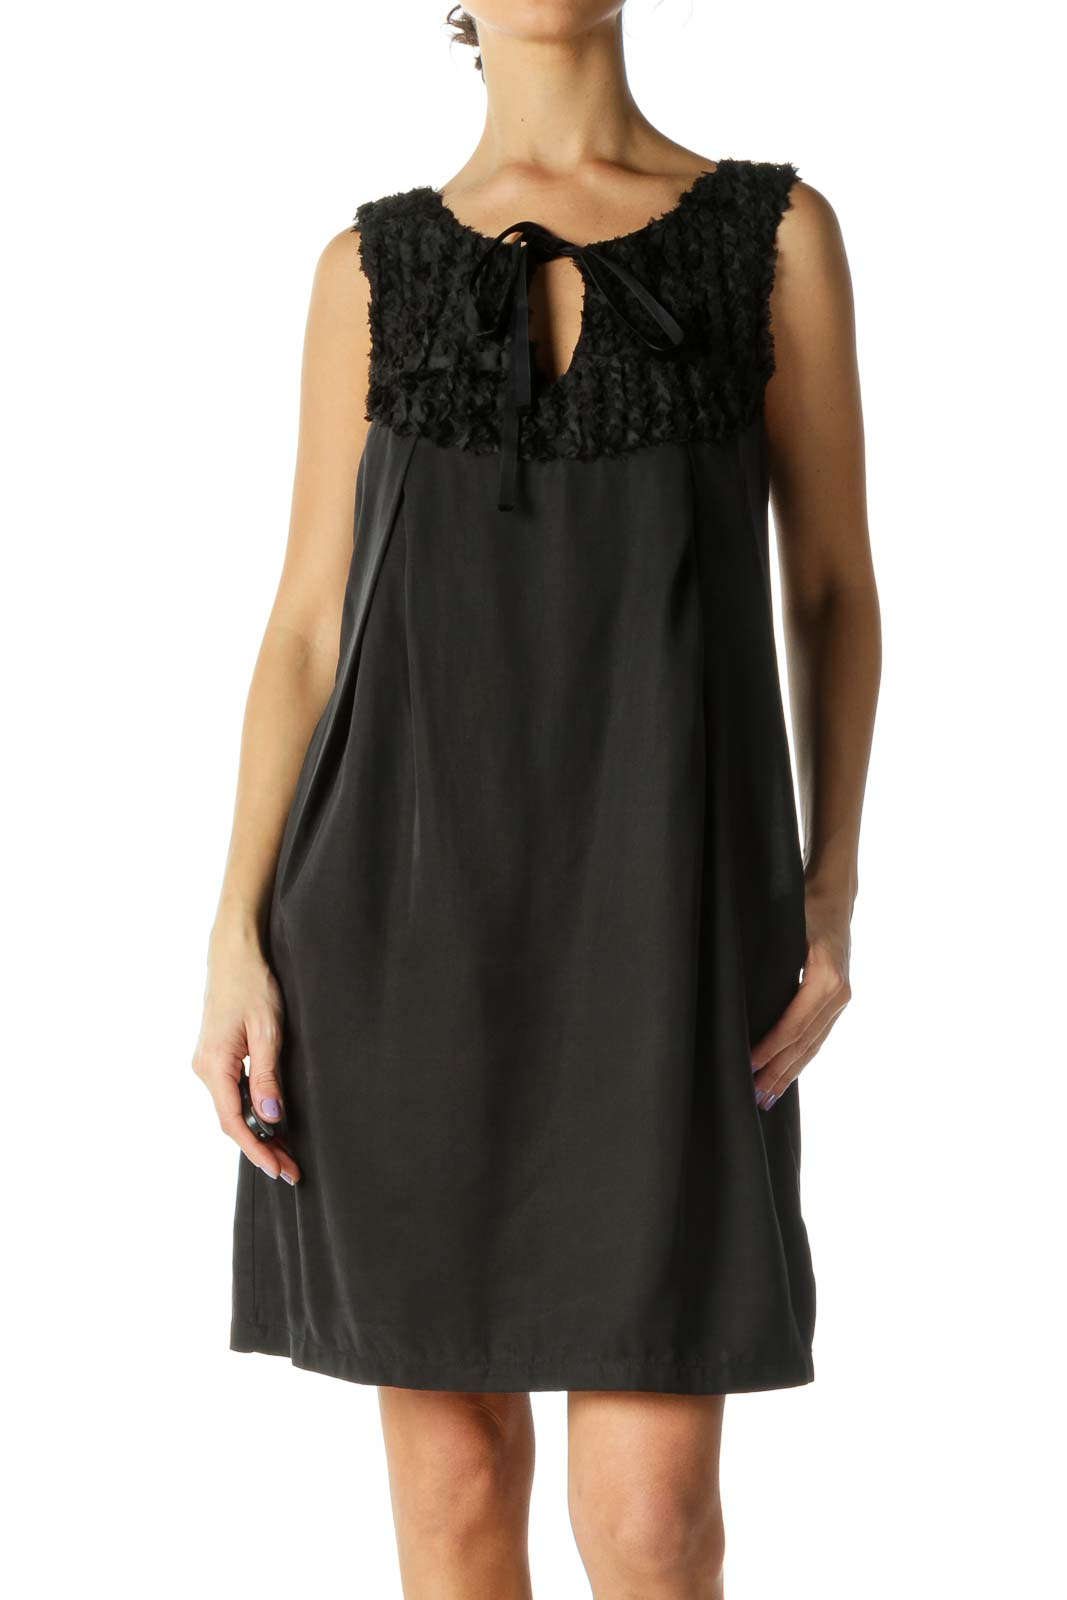 Black Ruffled Detail Dress Front